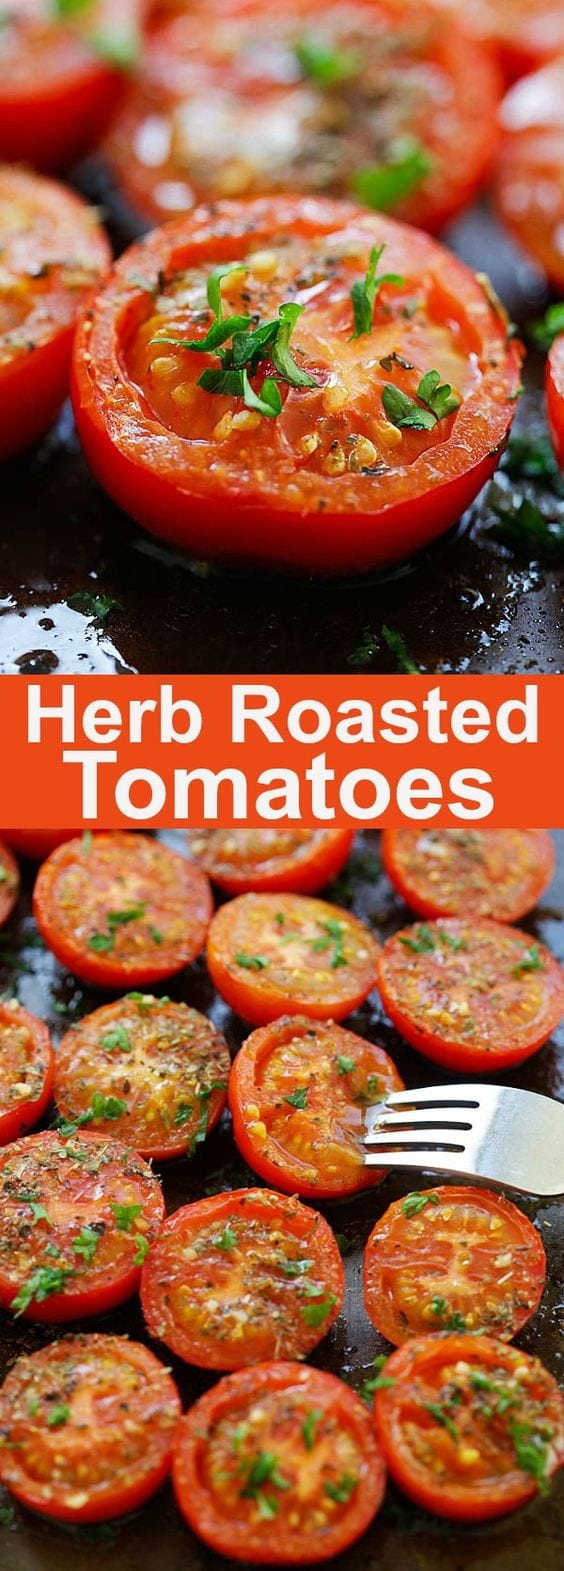 Herb Roasted Tomatoes - easiest and best roasted tomatoes recipe ever, with Italian seasoning and herb. A perfect side dish for every occasion | rasamalaysia.com